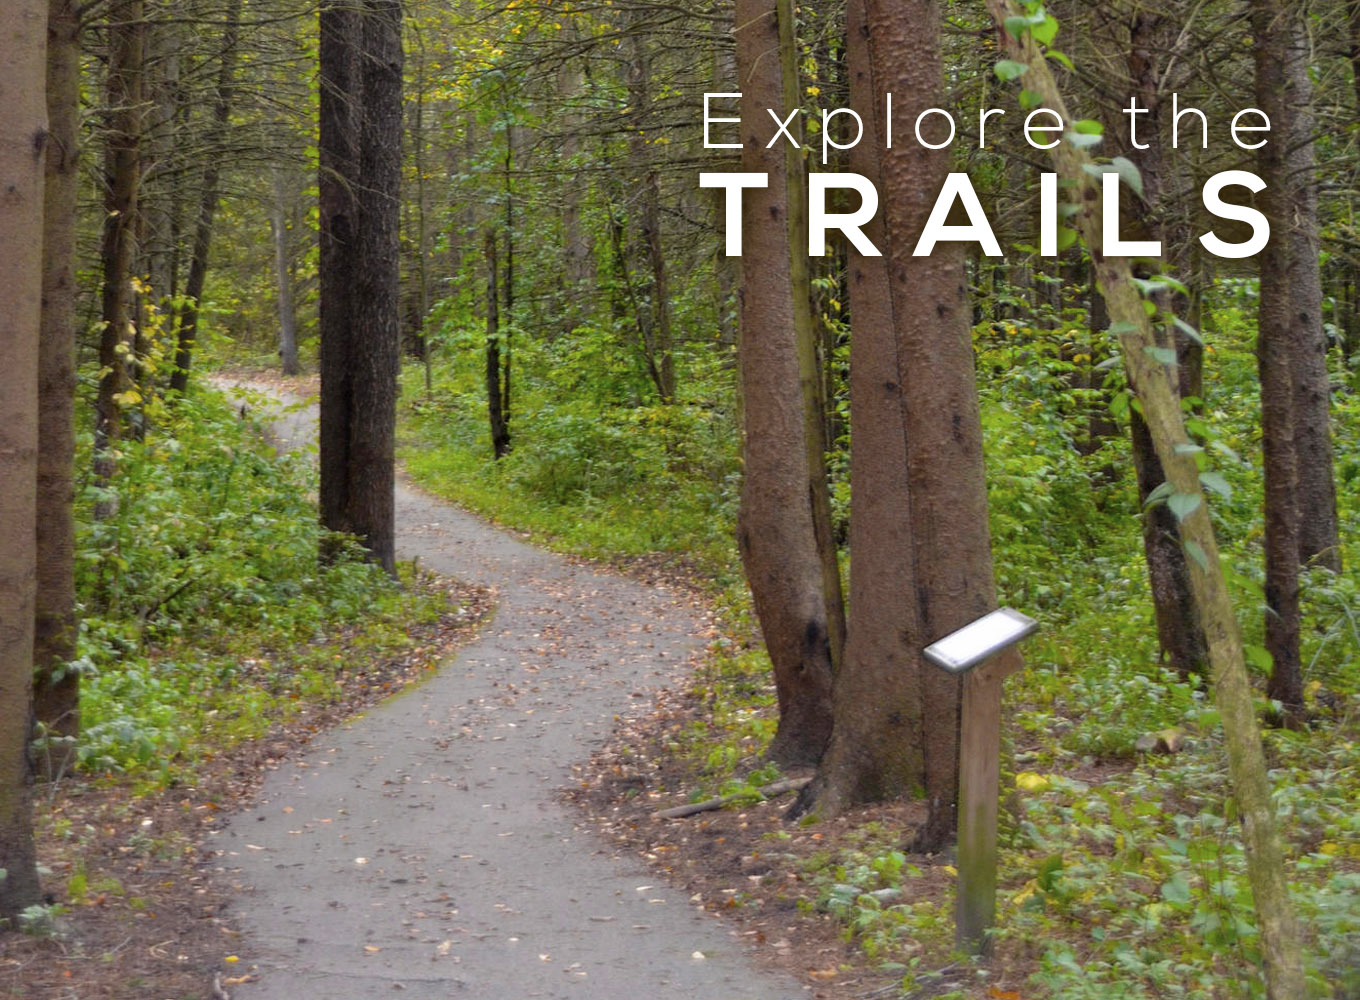 Explore the Trails